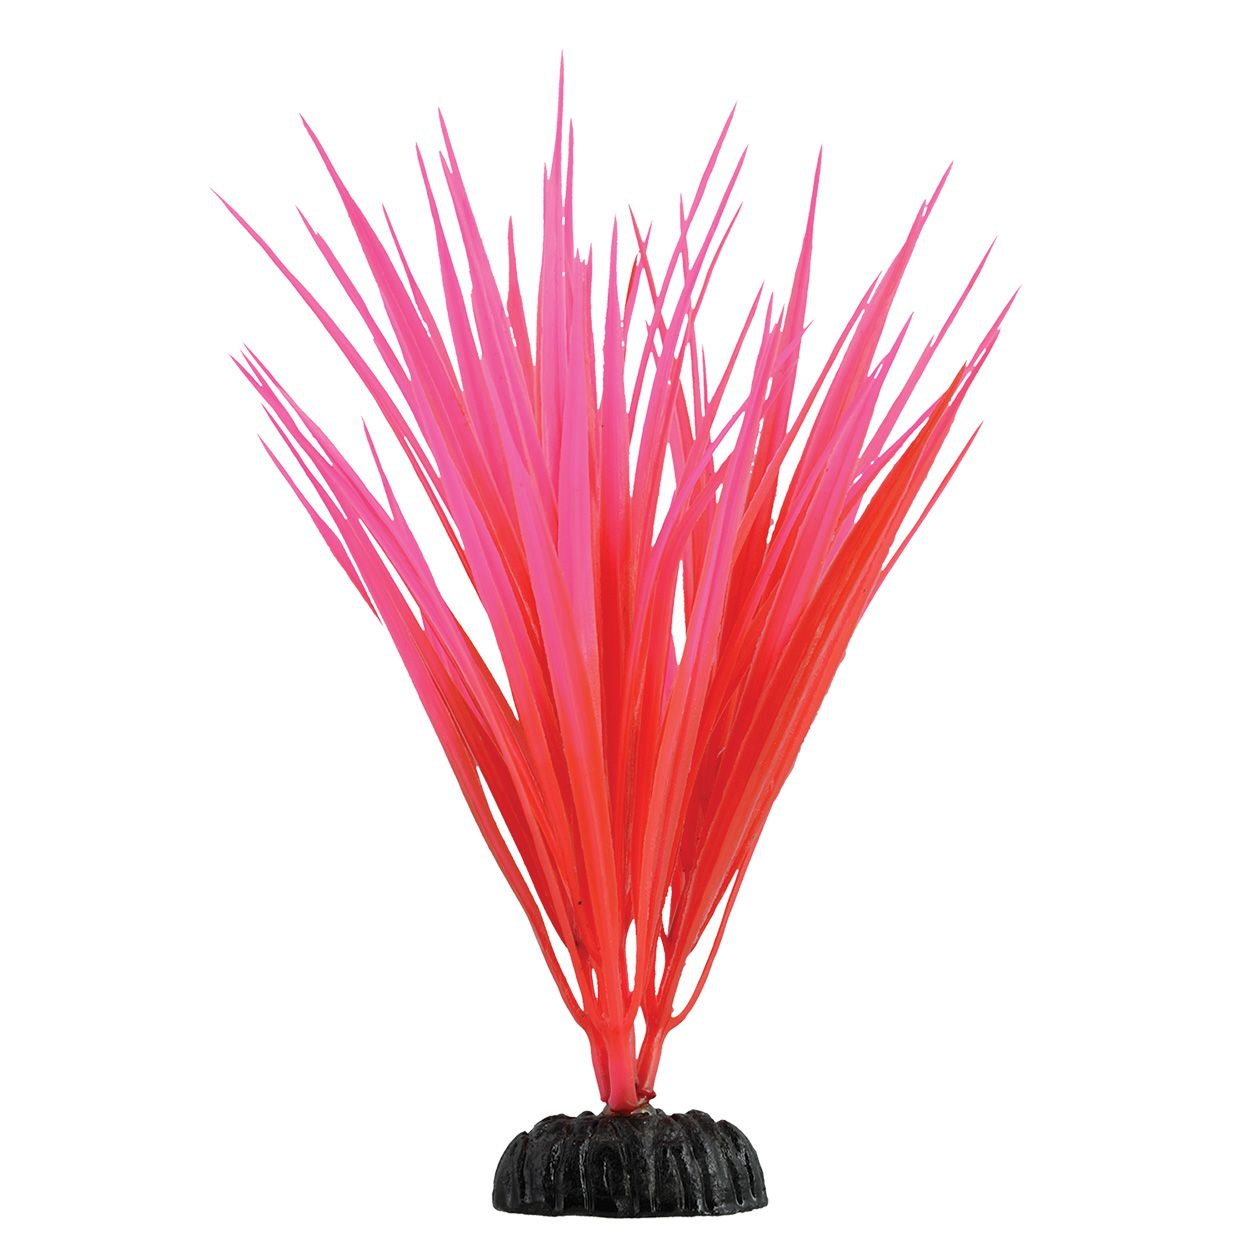 Underwater Treasures Rose Nile Grass - 7.5 inch